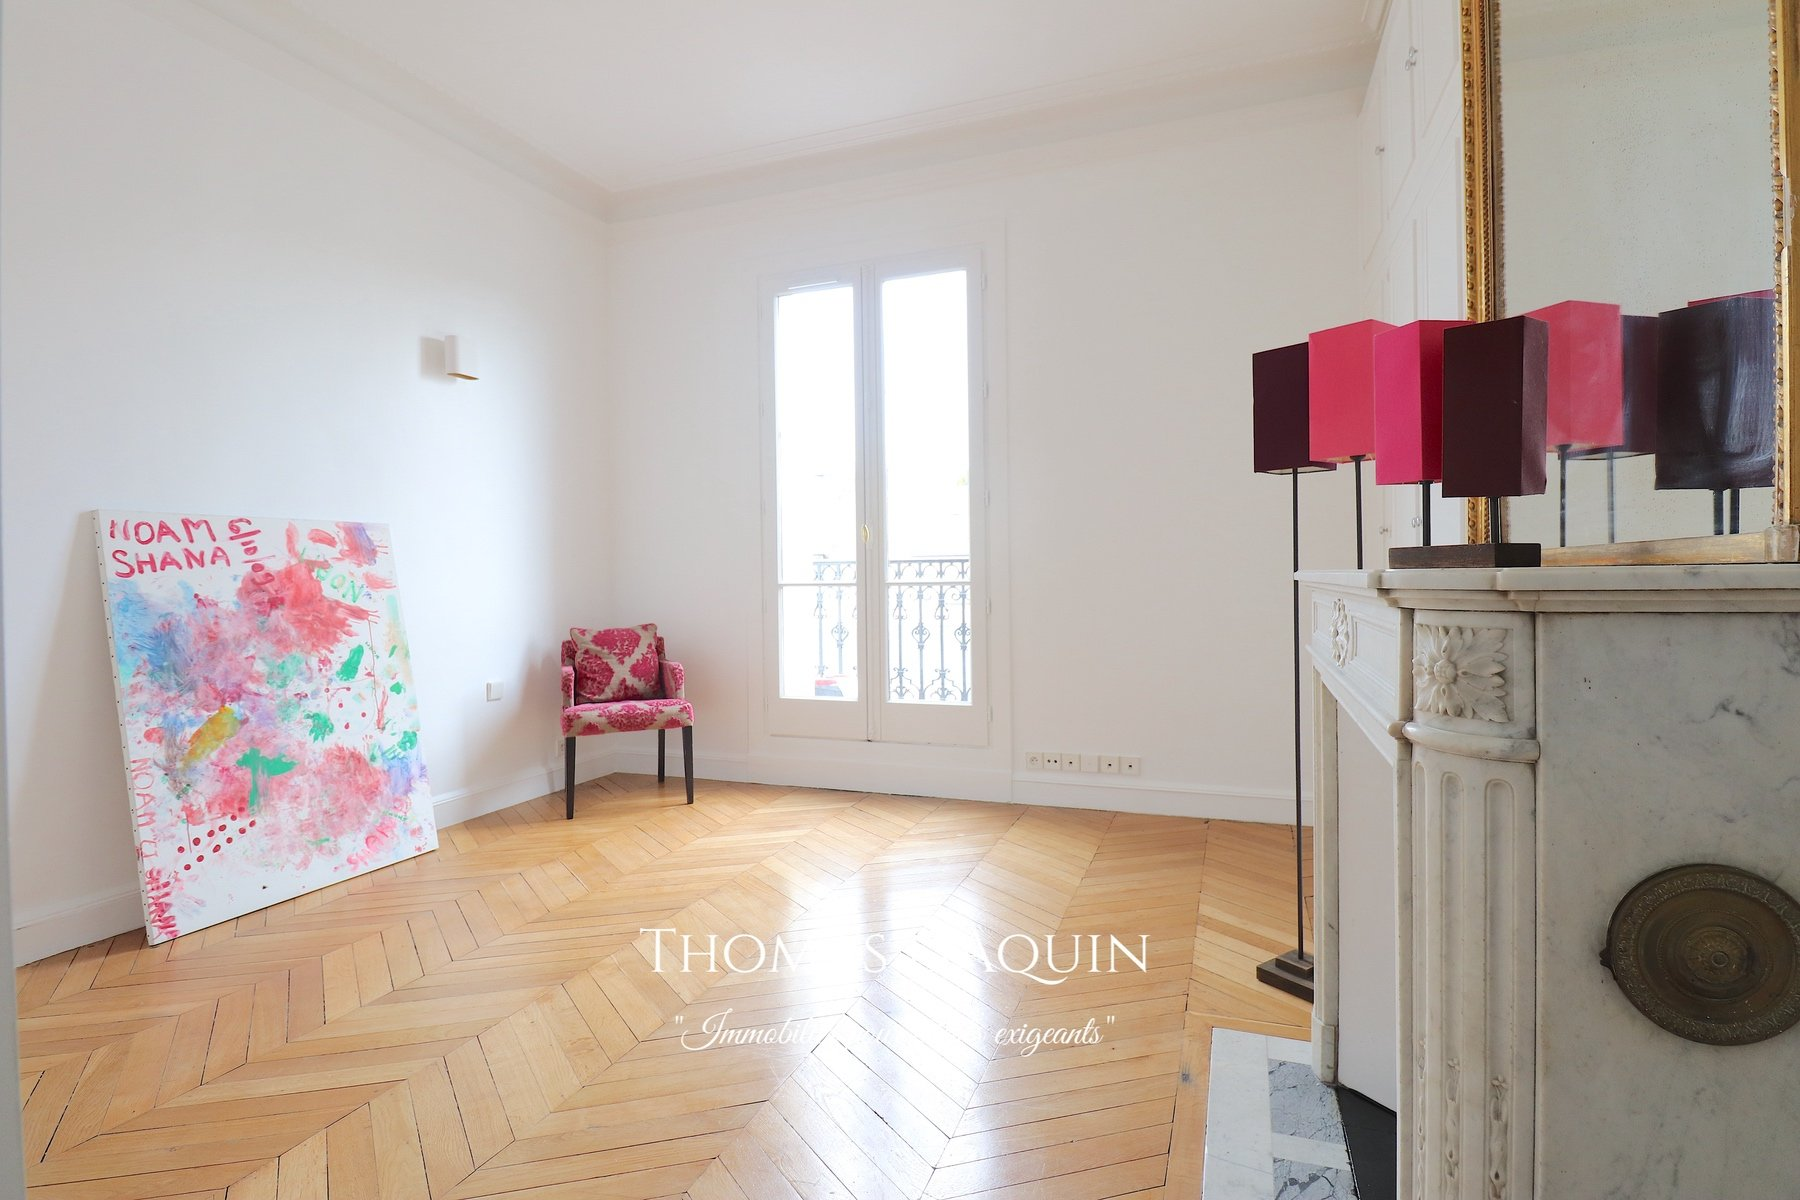 Sale Apartment - Paris 8th (Paris 8ème) Faubourg-du-Roule